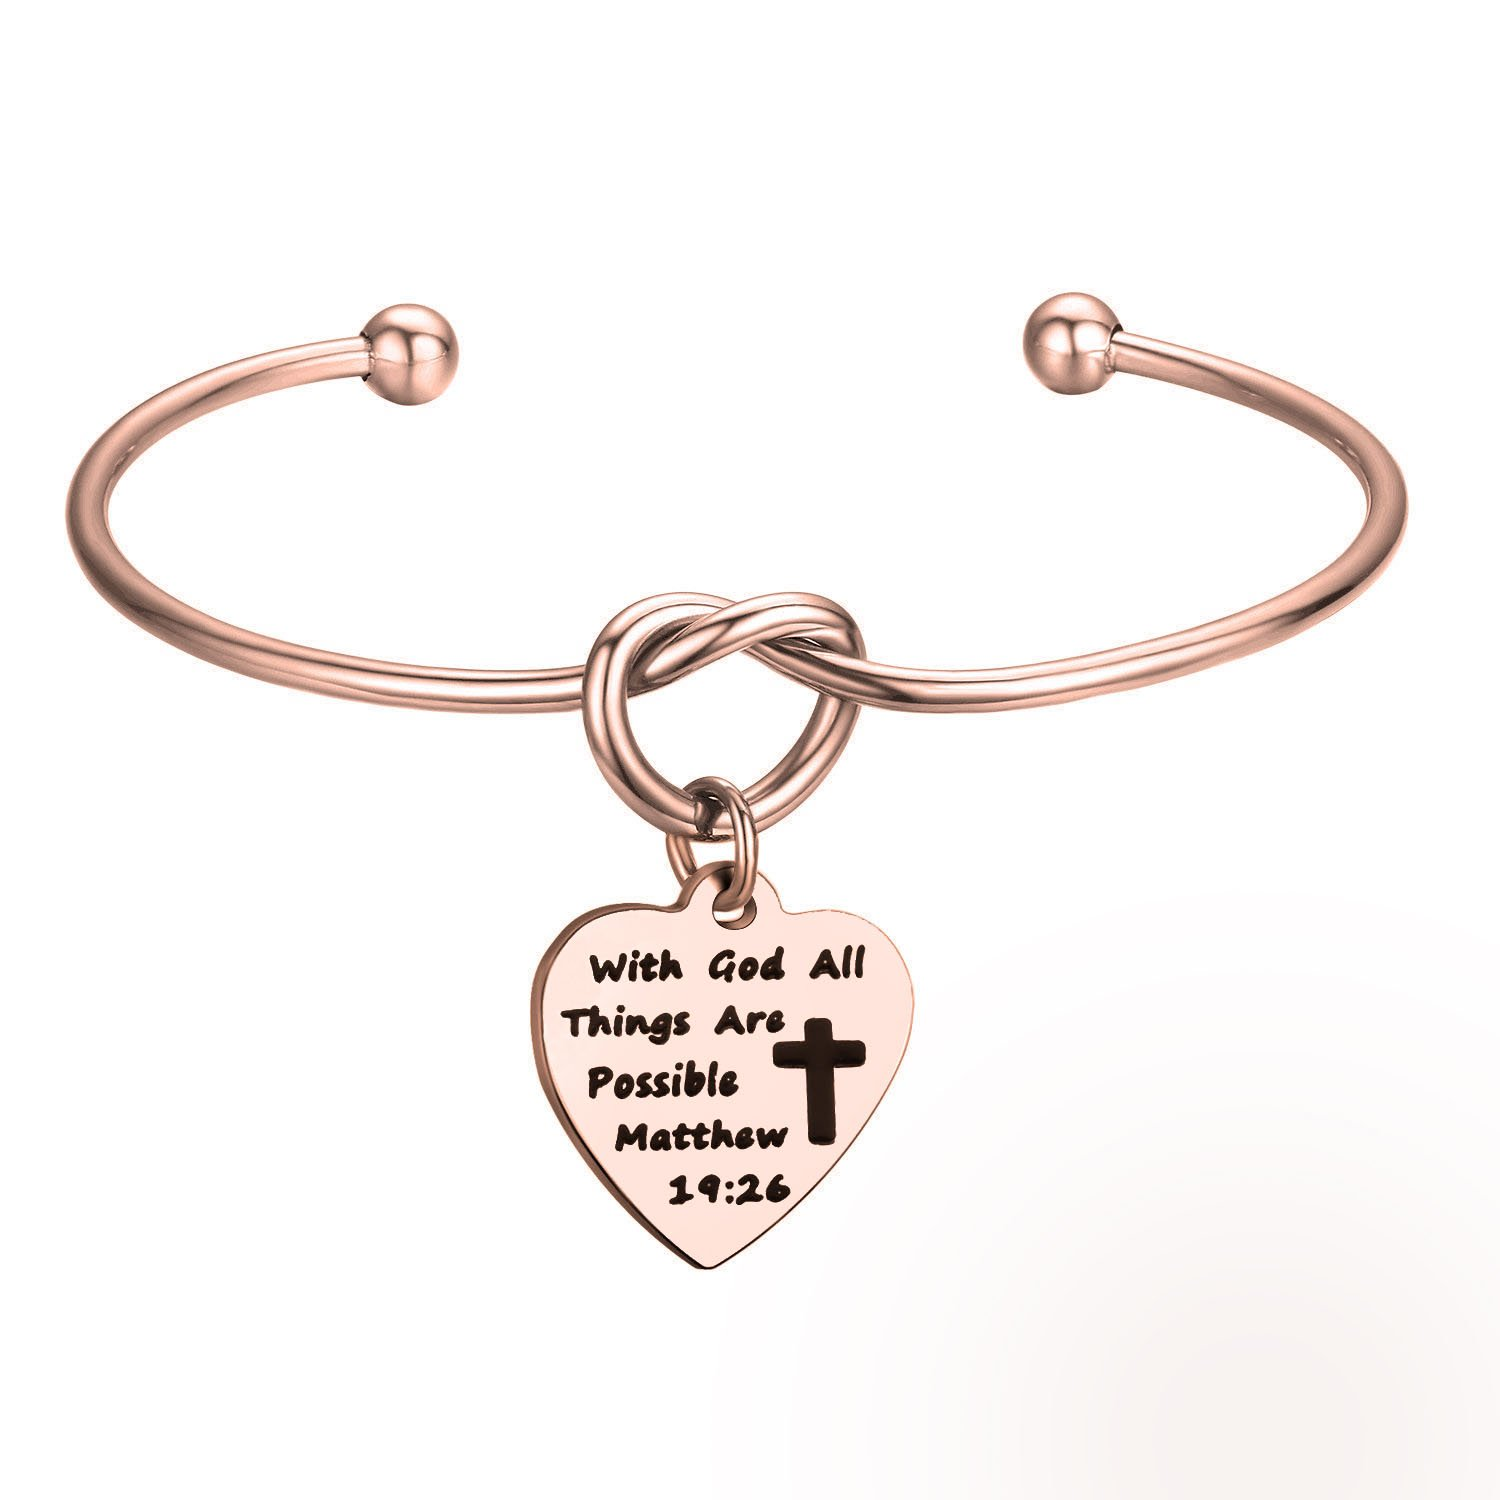 KUIYAI With God All Things Are Possible Knot Bangle First Communion Bracelet Gift (with god cuff RG)